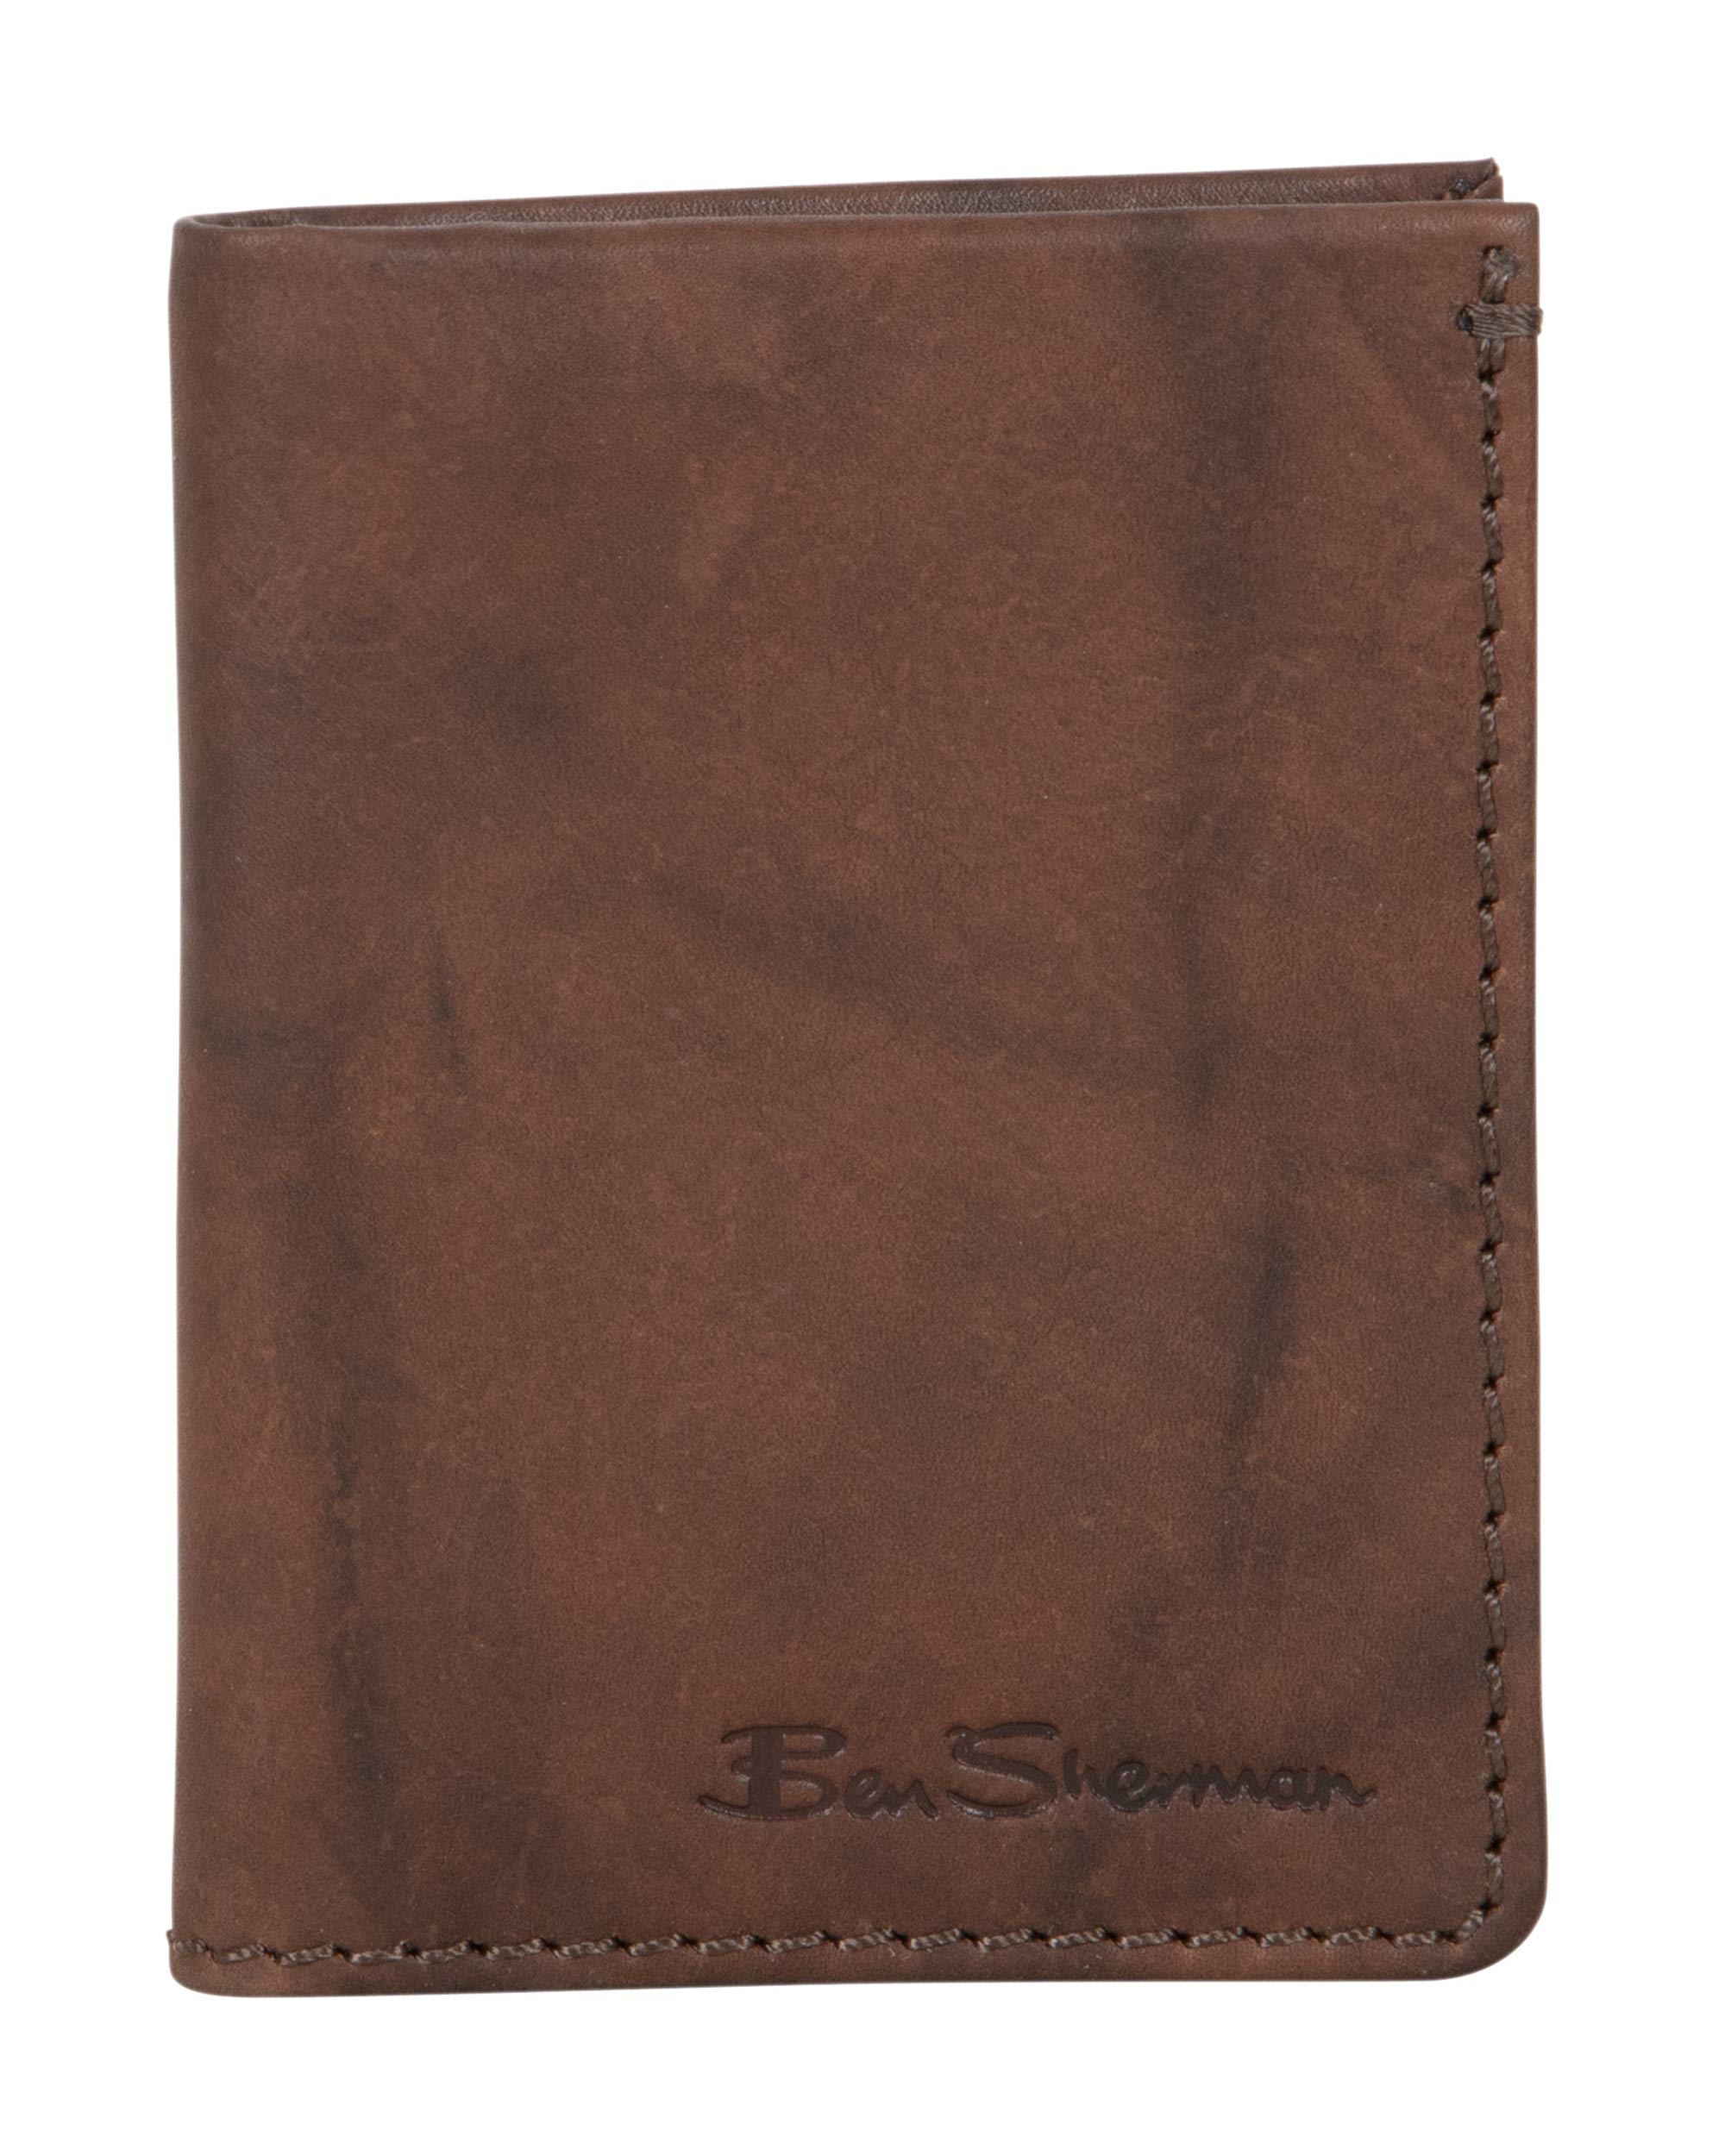 Manchester Marble Crunch Leather Slim Bifold Wallet - Brown